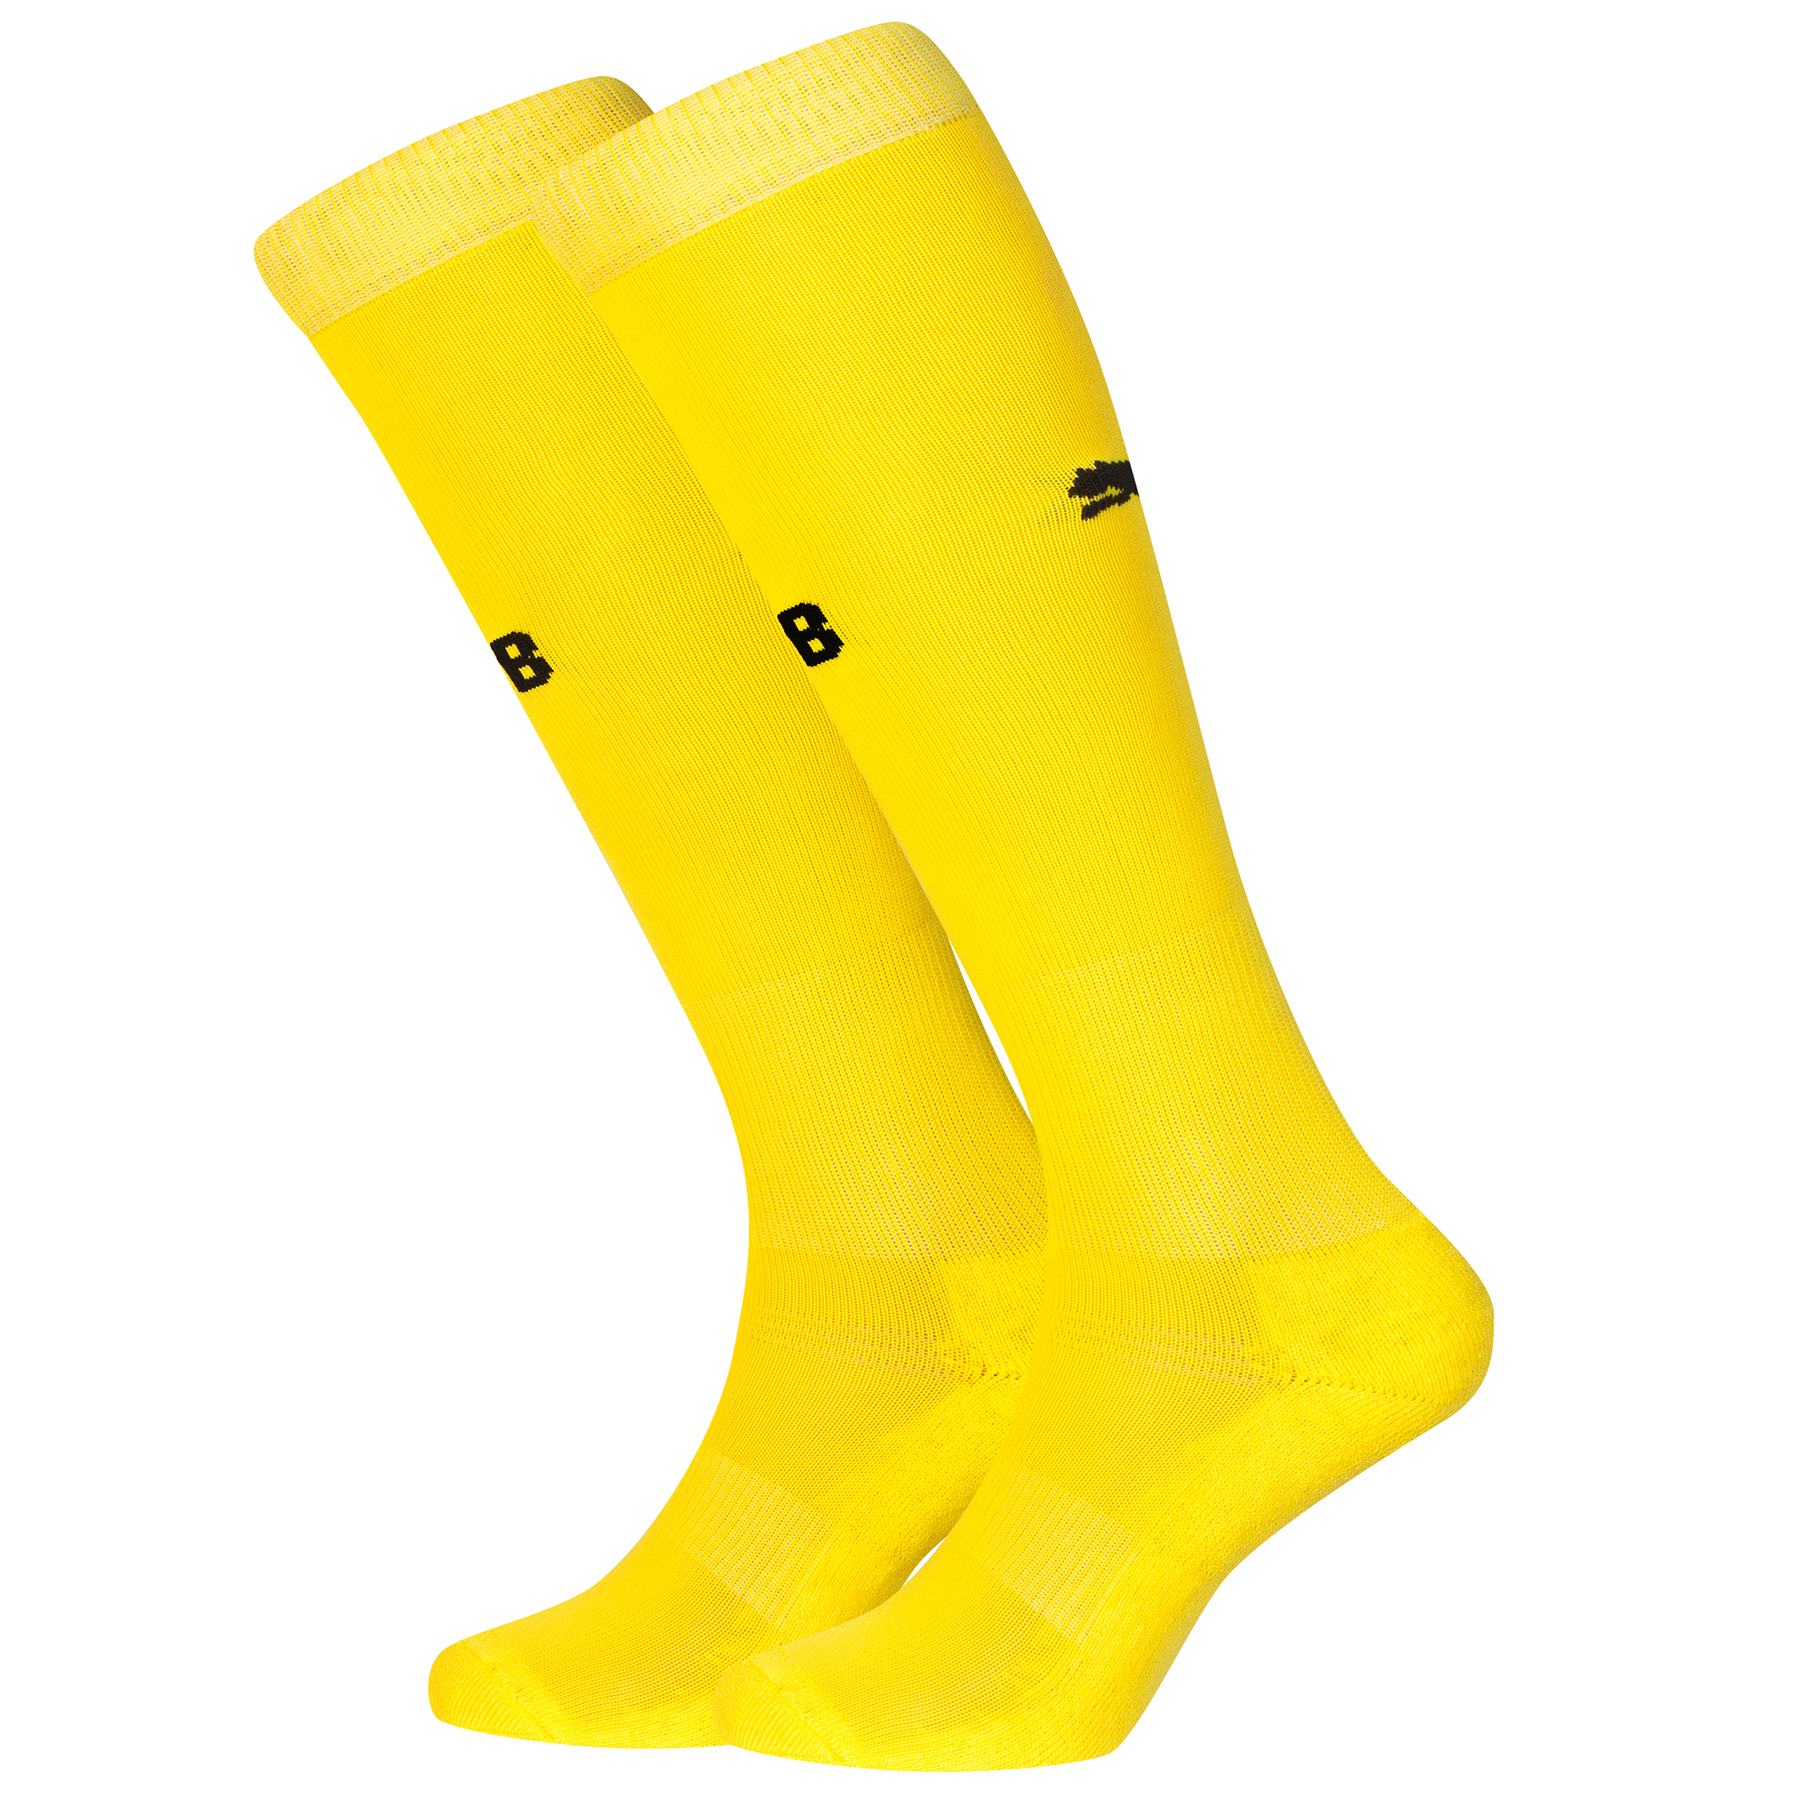 BVB Ambassador Home Socks 2015/16 Yellow